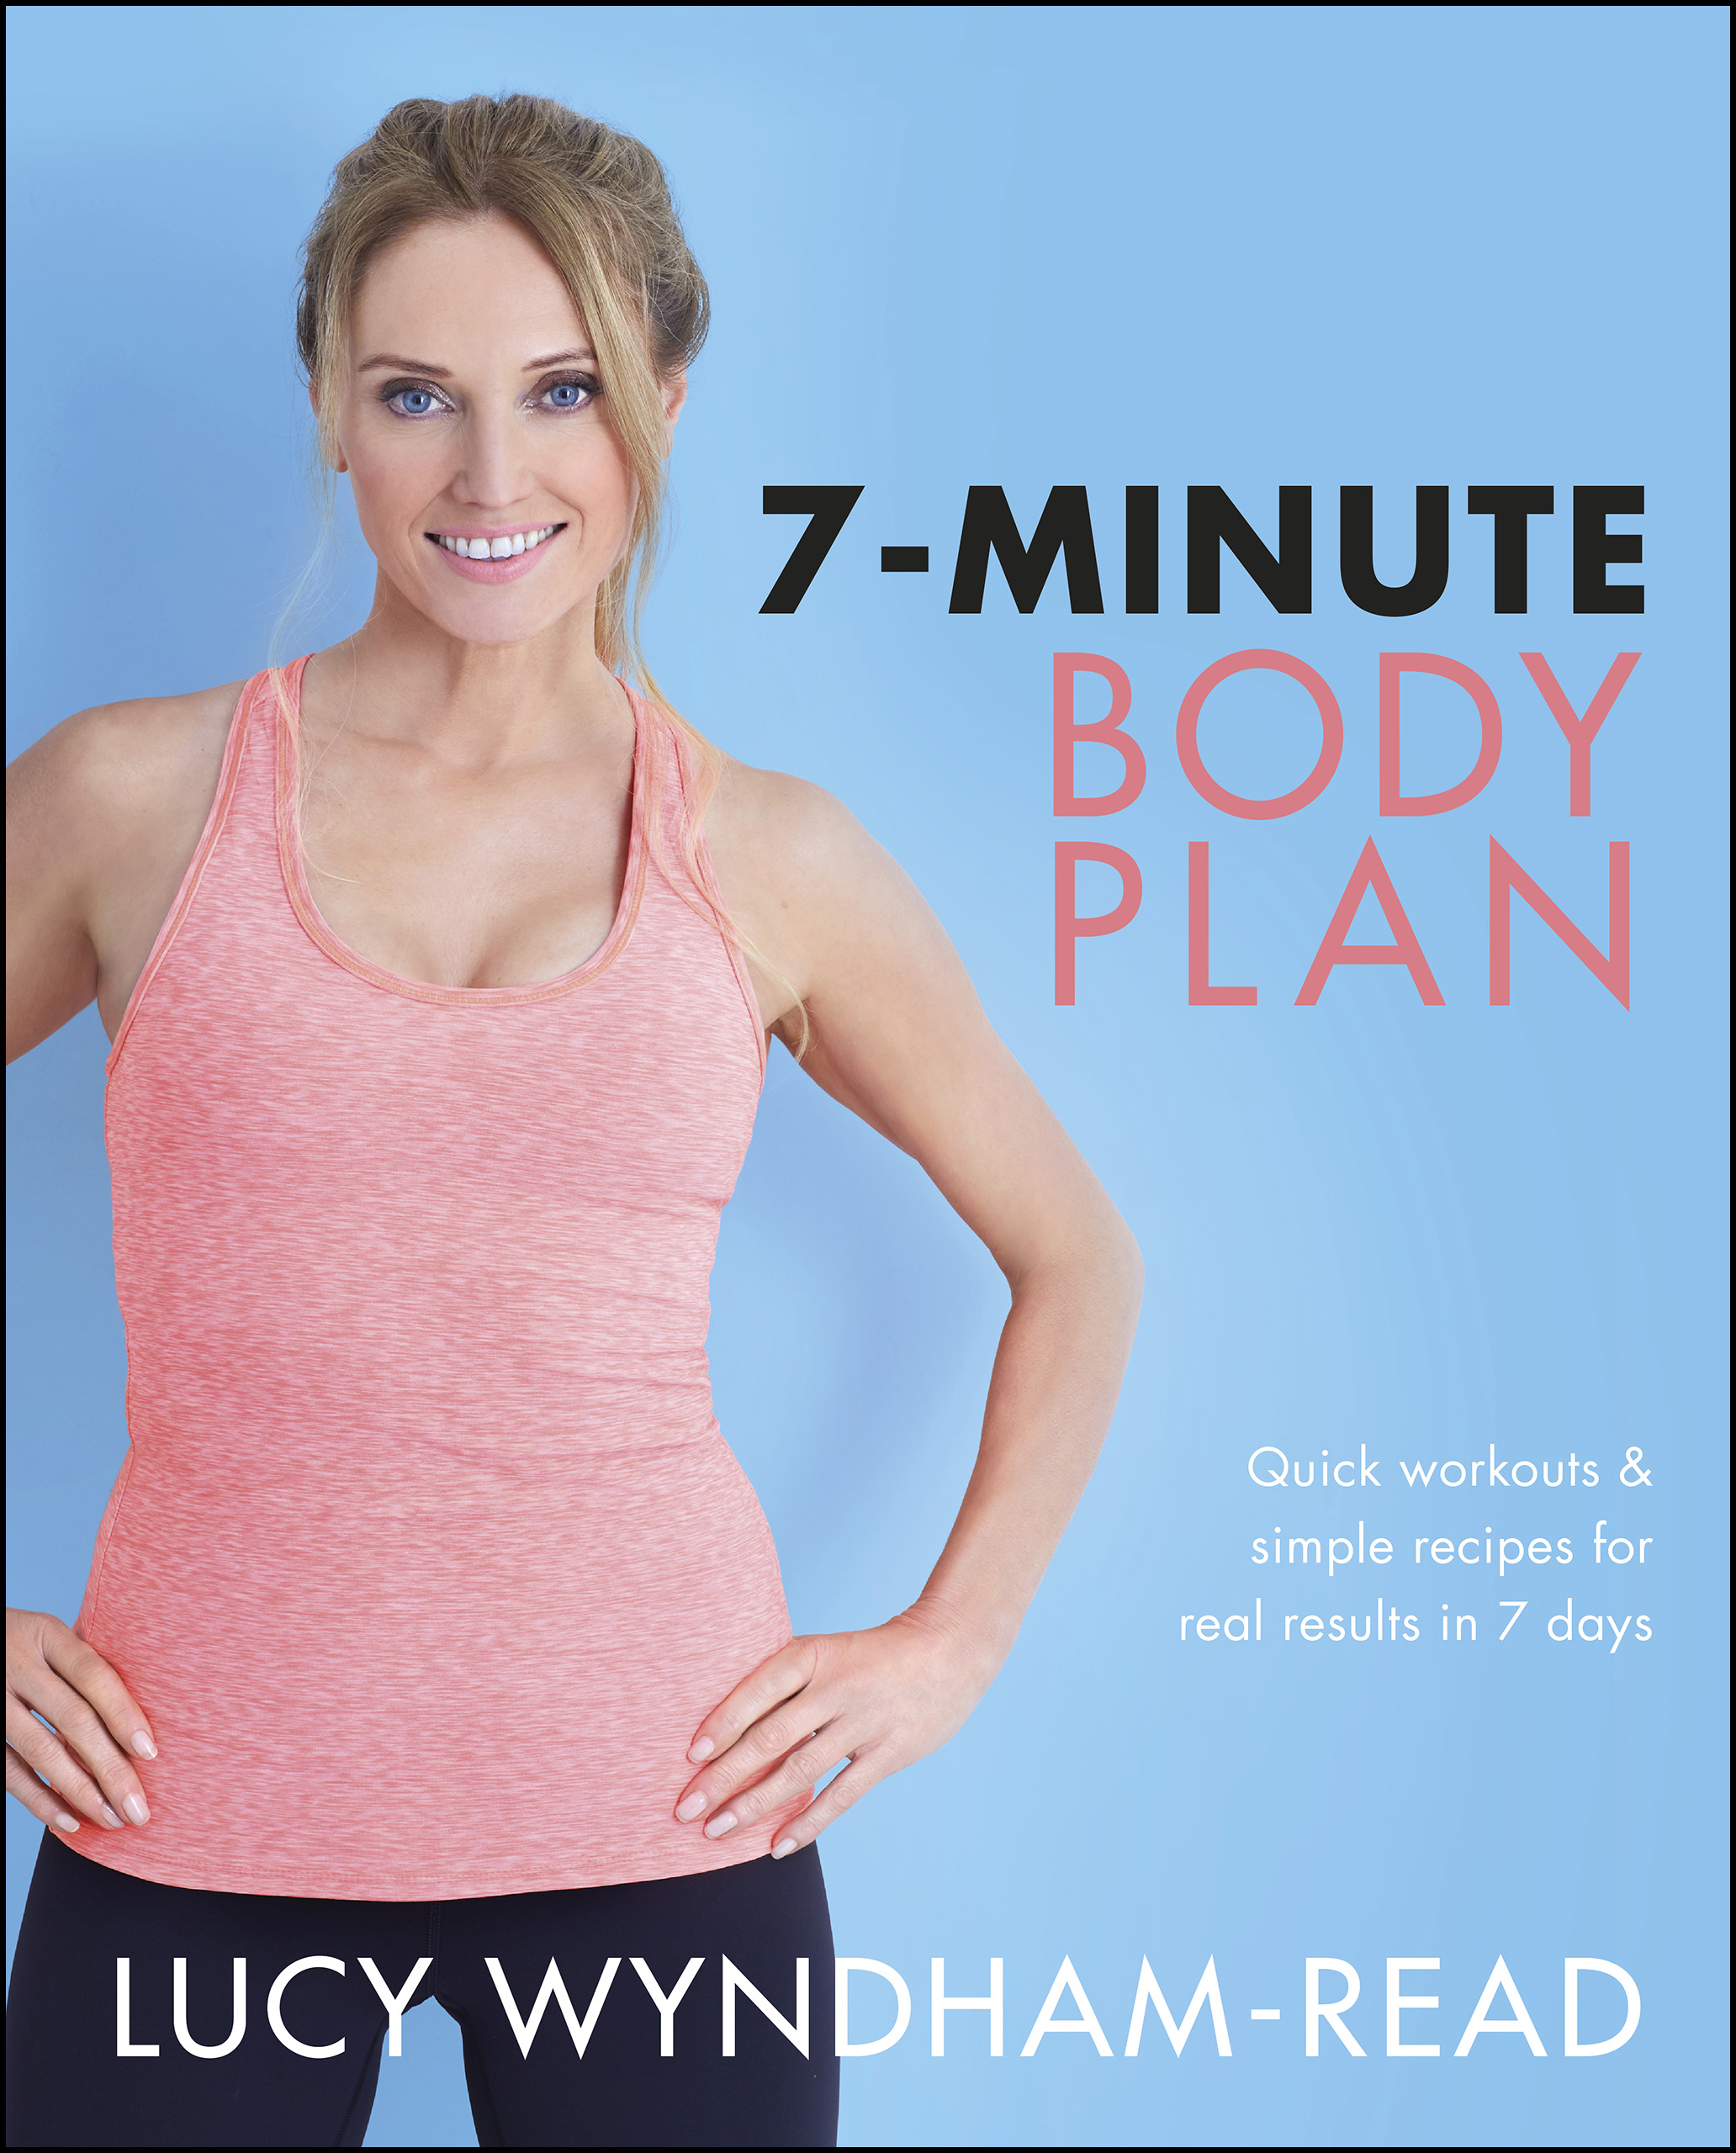 7-Minute Body Plan Quick workouts & simple recipes for real results in 7 days